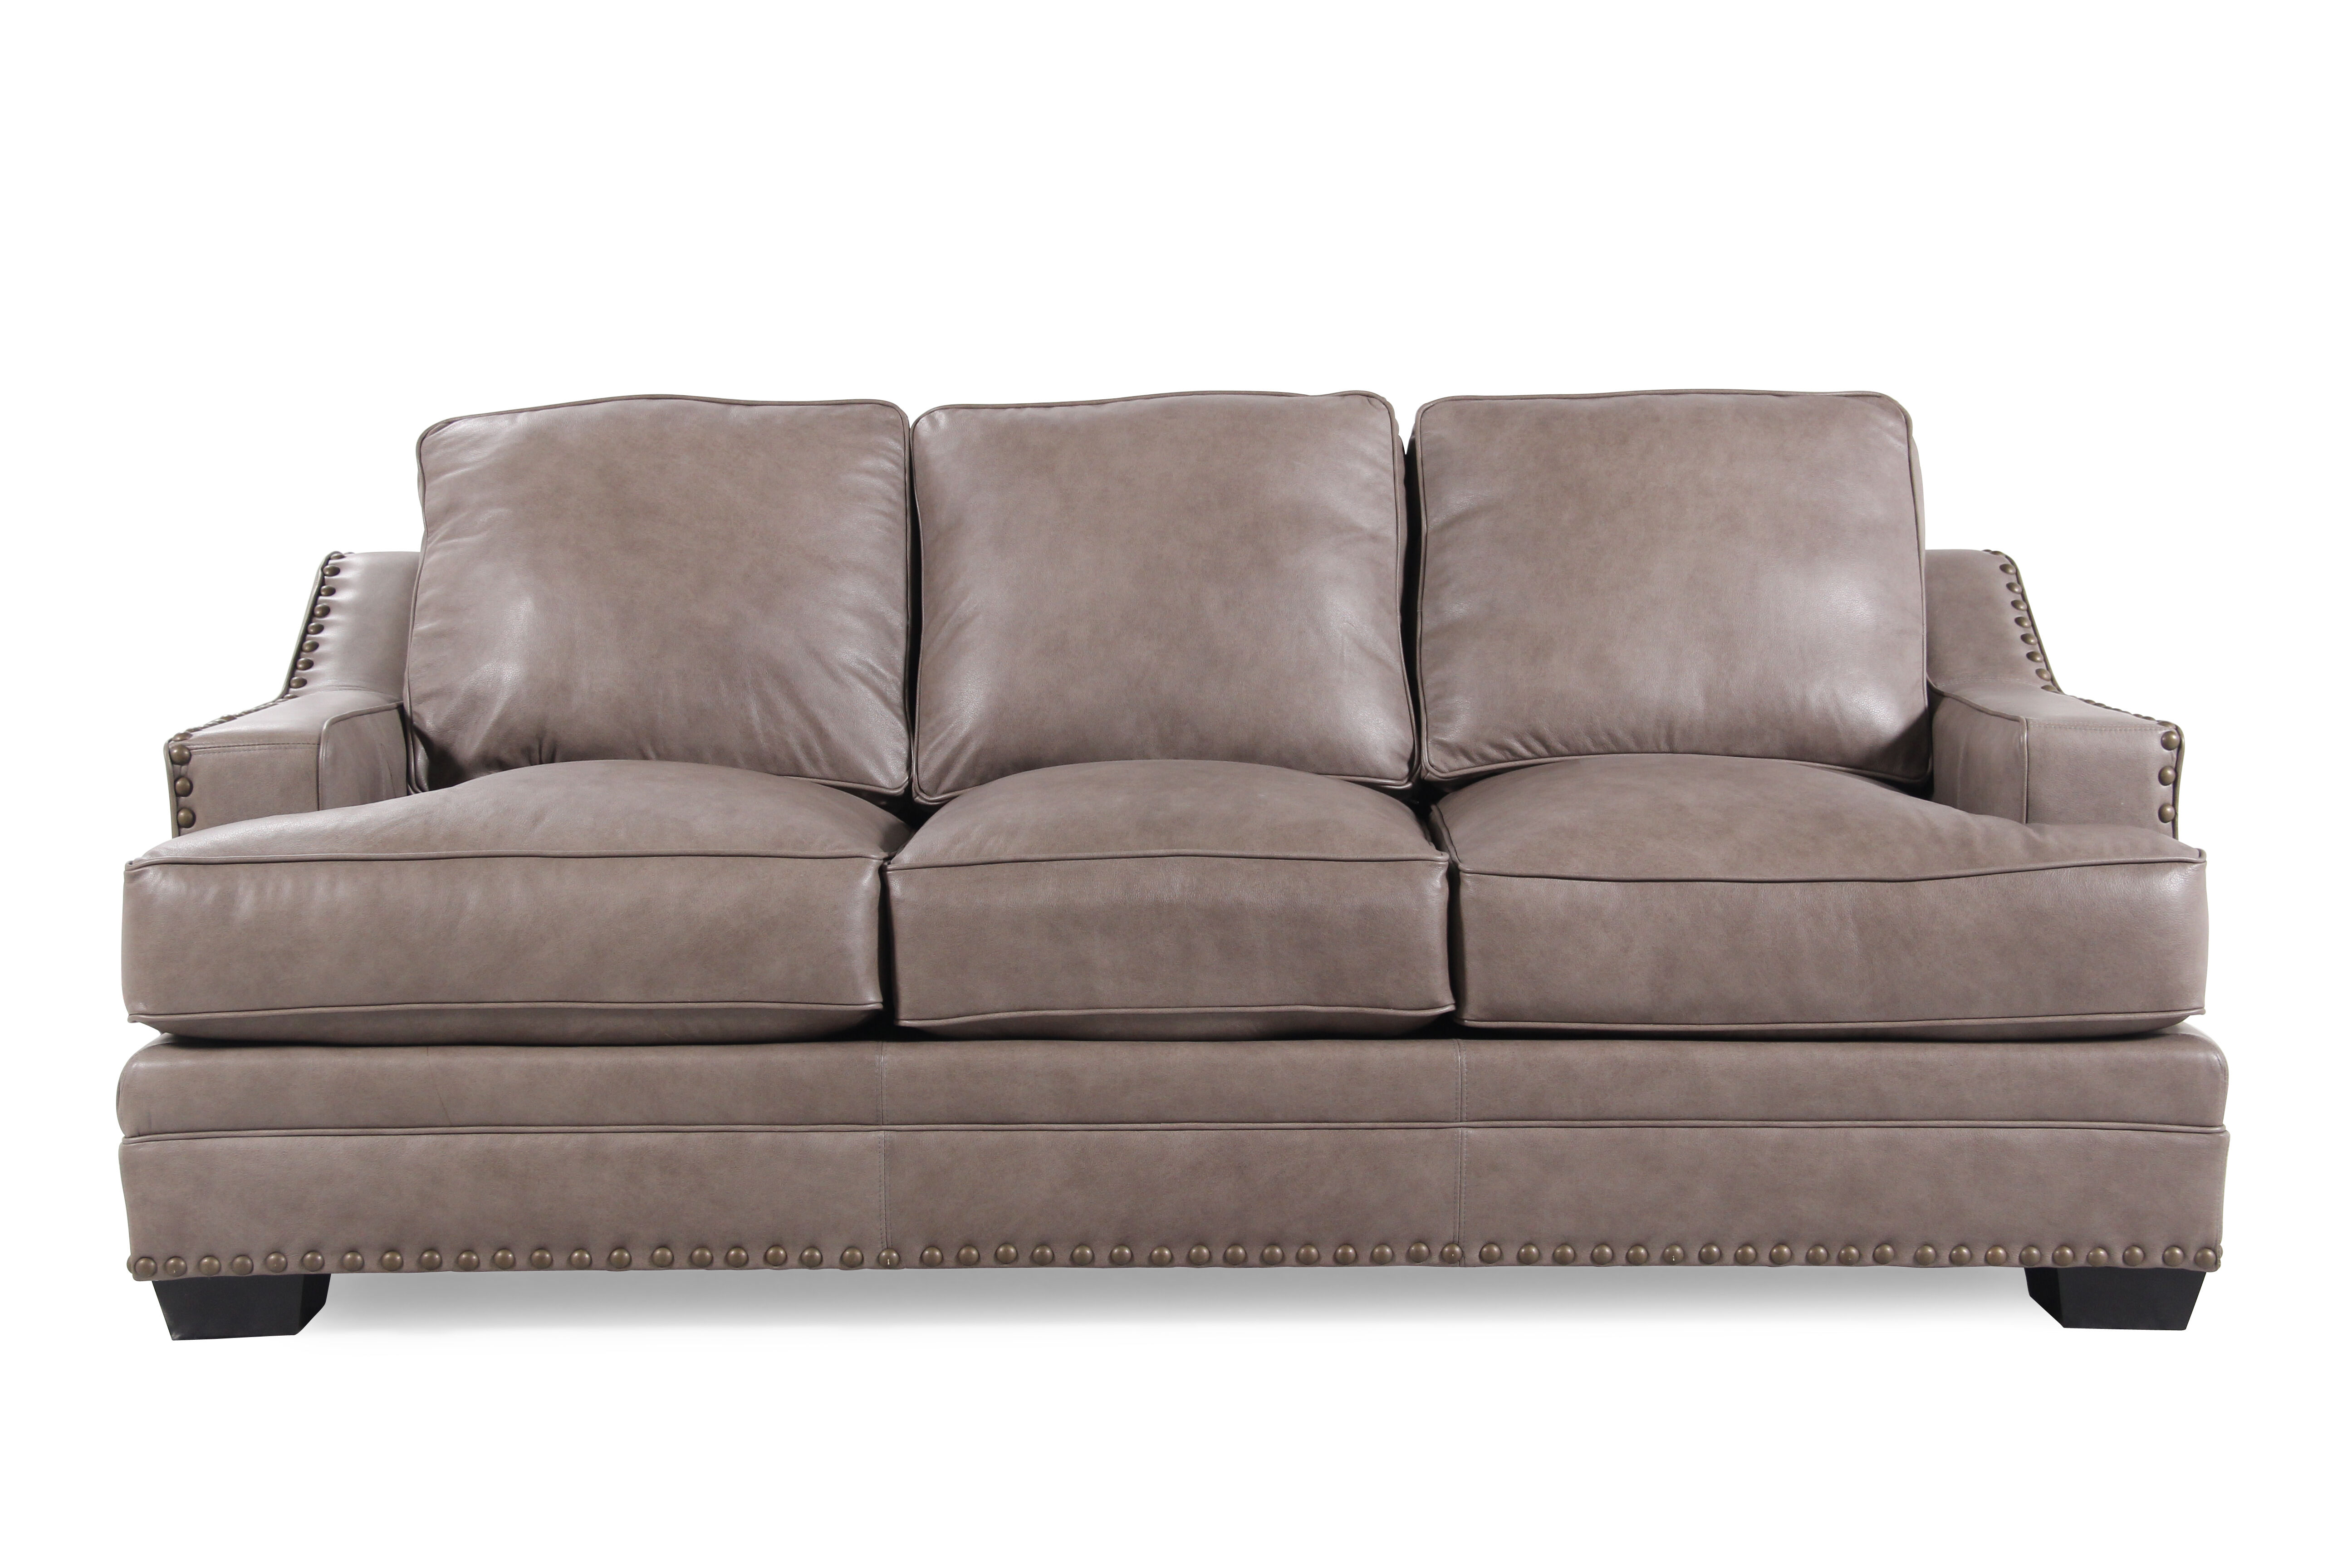 low profile leather sectional sofa toddler chair nailhead accented 84 quot in chestnut